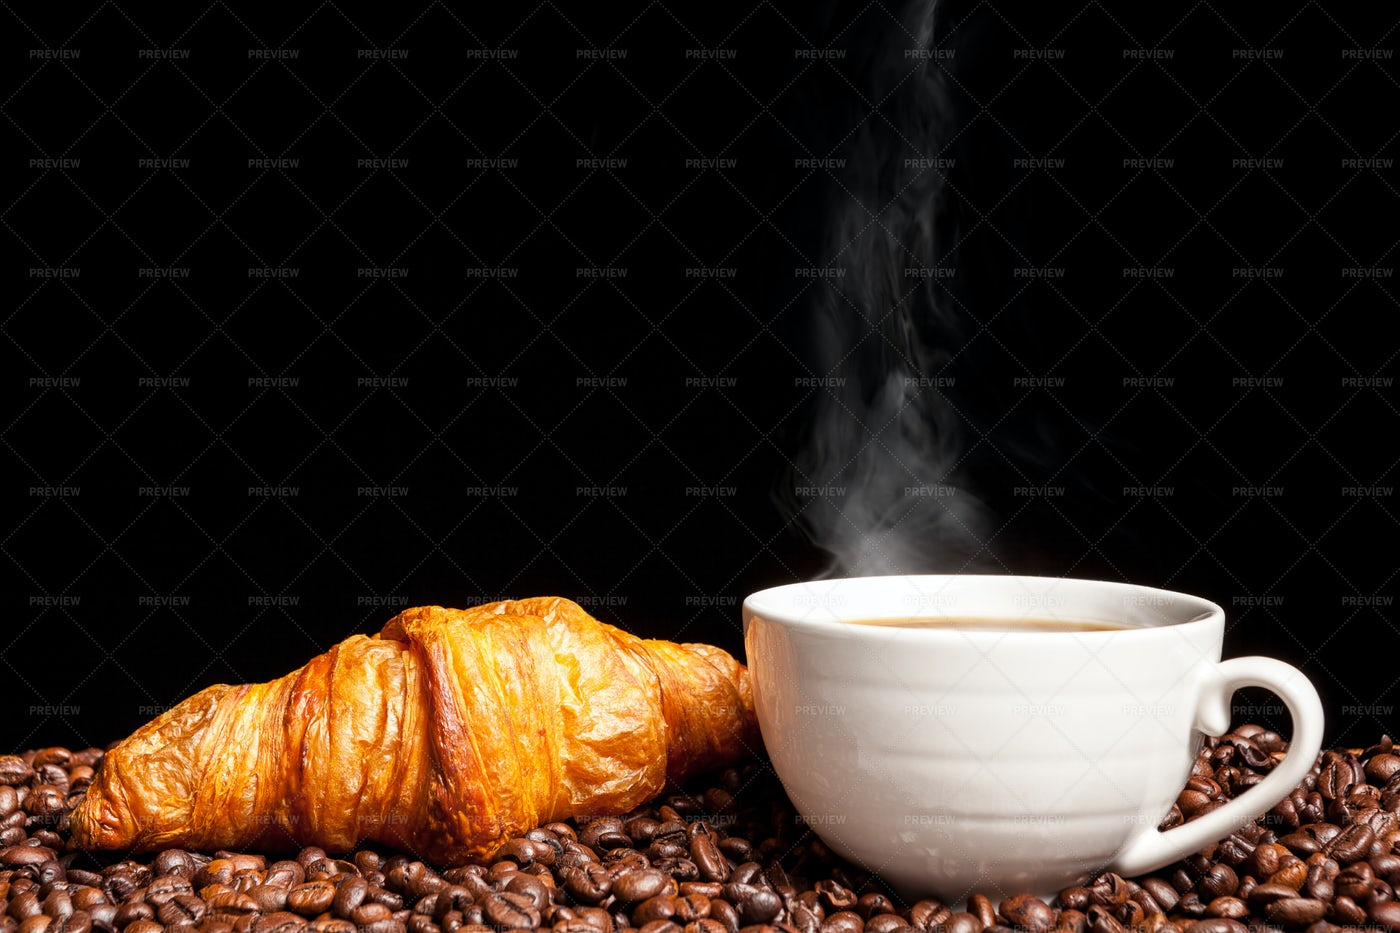 Croissant With Steaming Coffee: Stock Photos